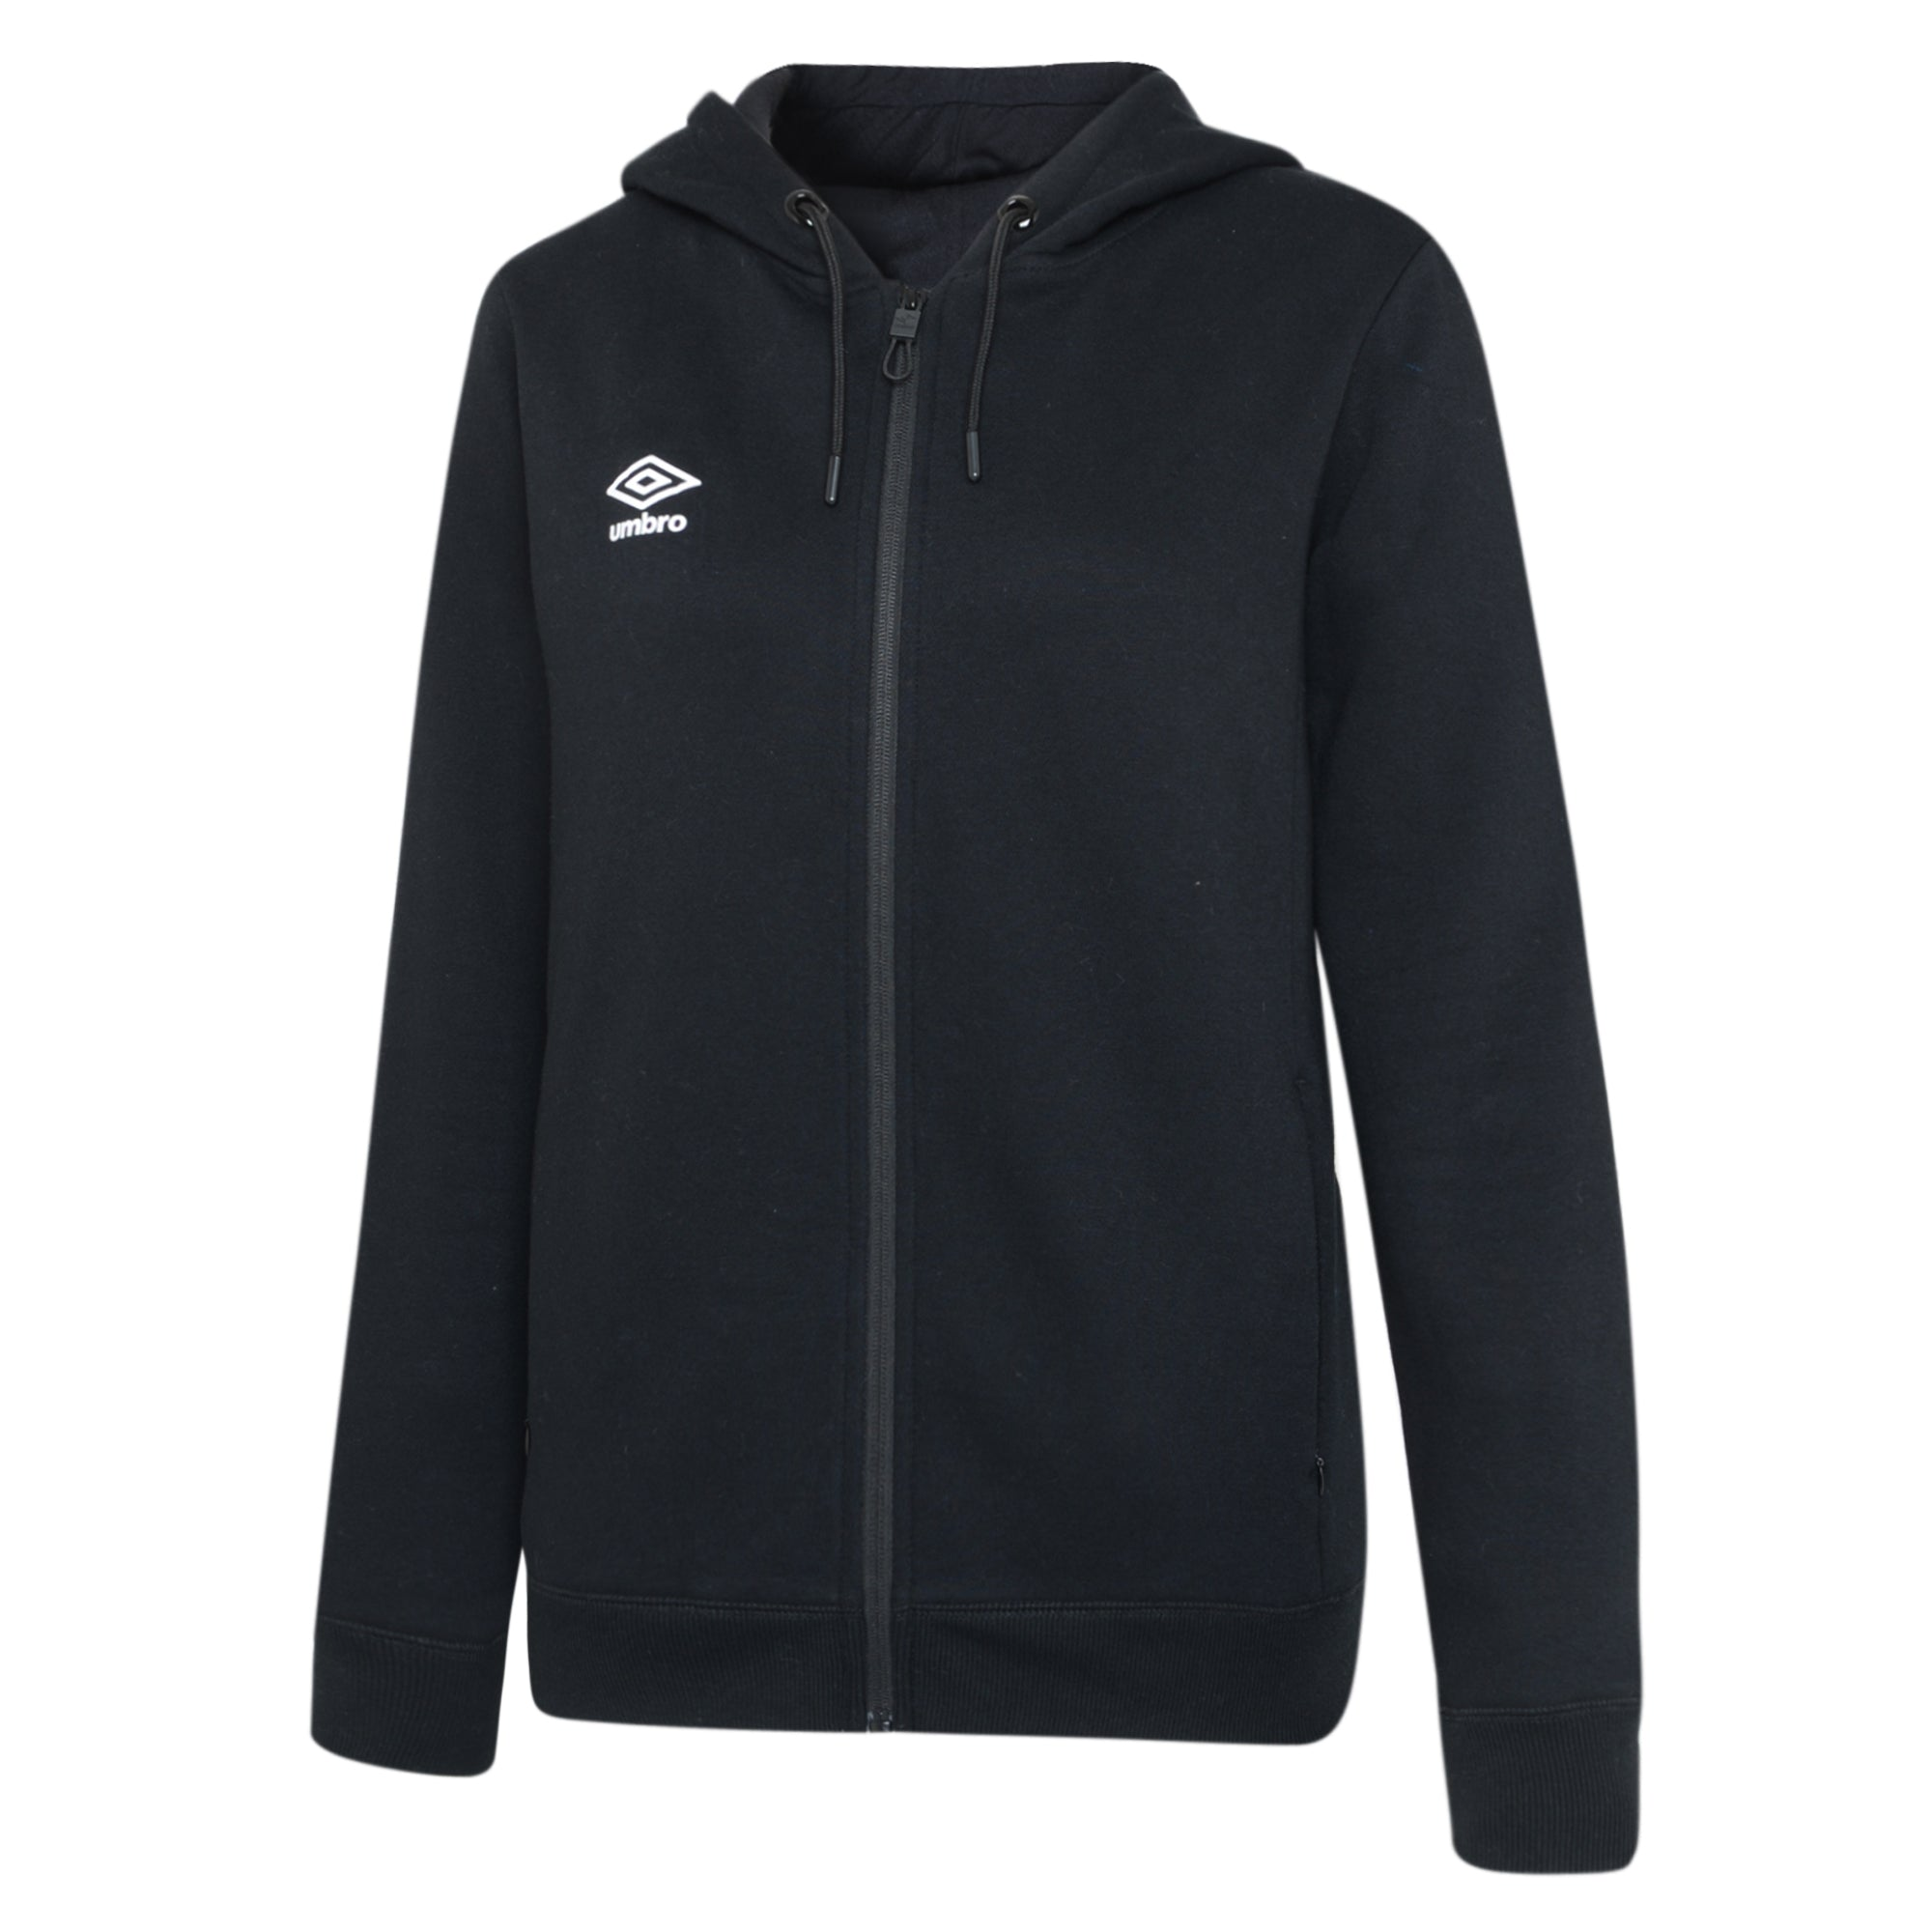 Umbro Club Leisure Women's Zipped Hoody - Black/White